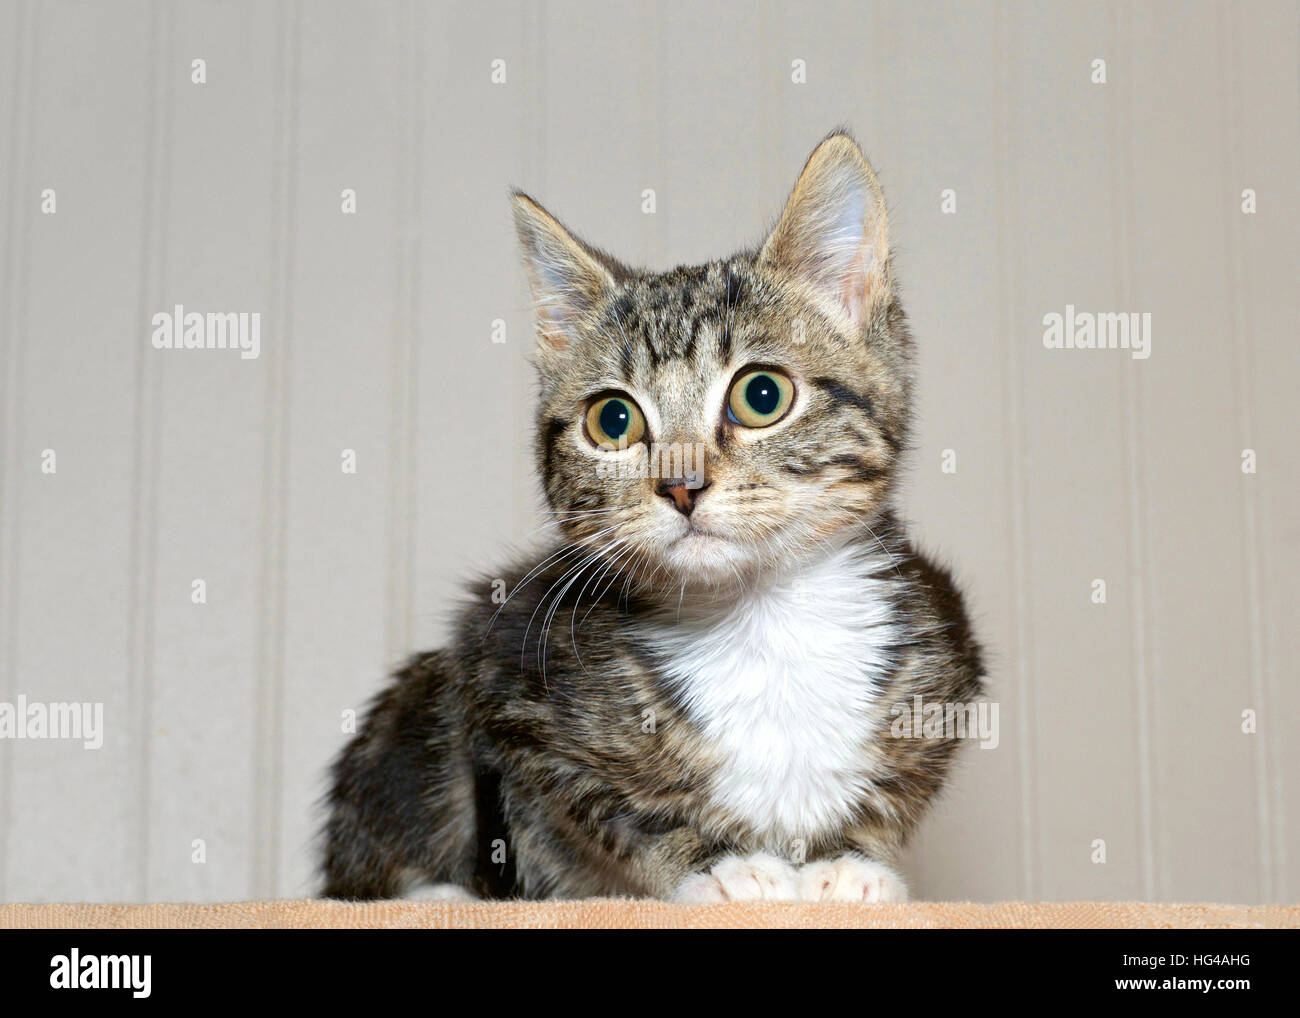 Striped Cat With White Chest